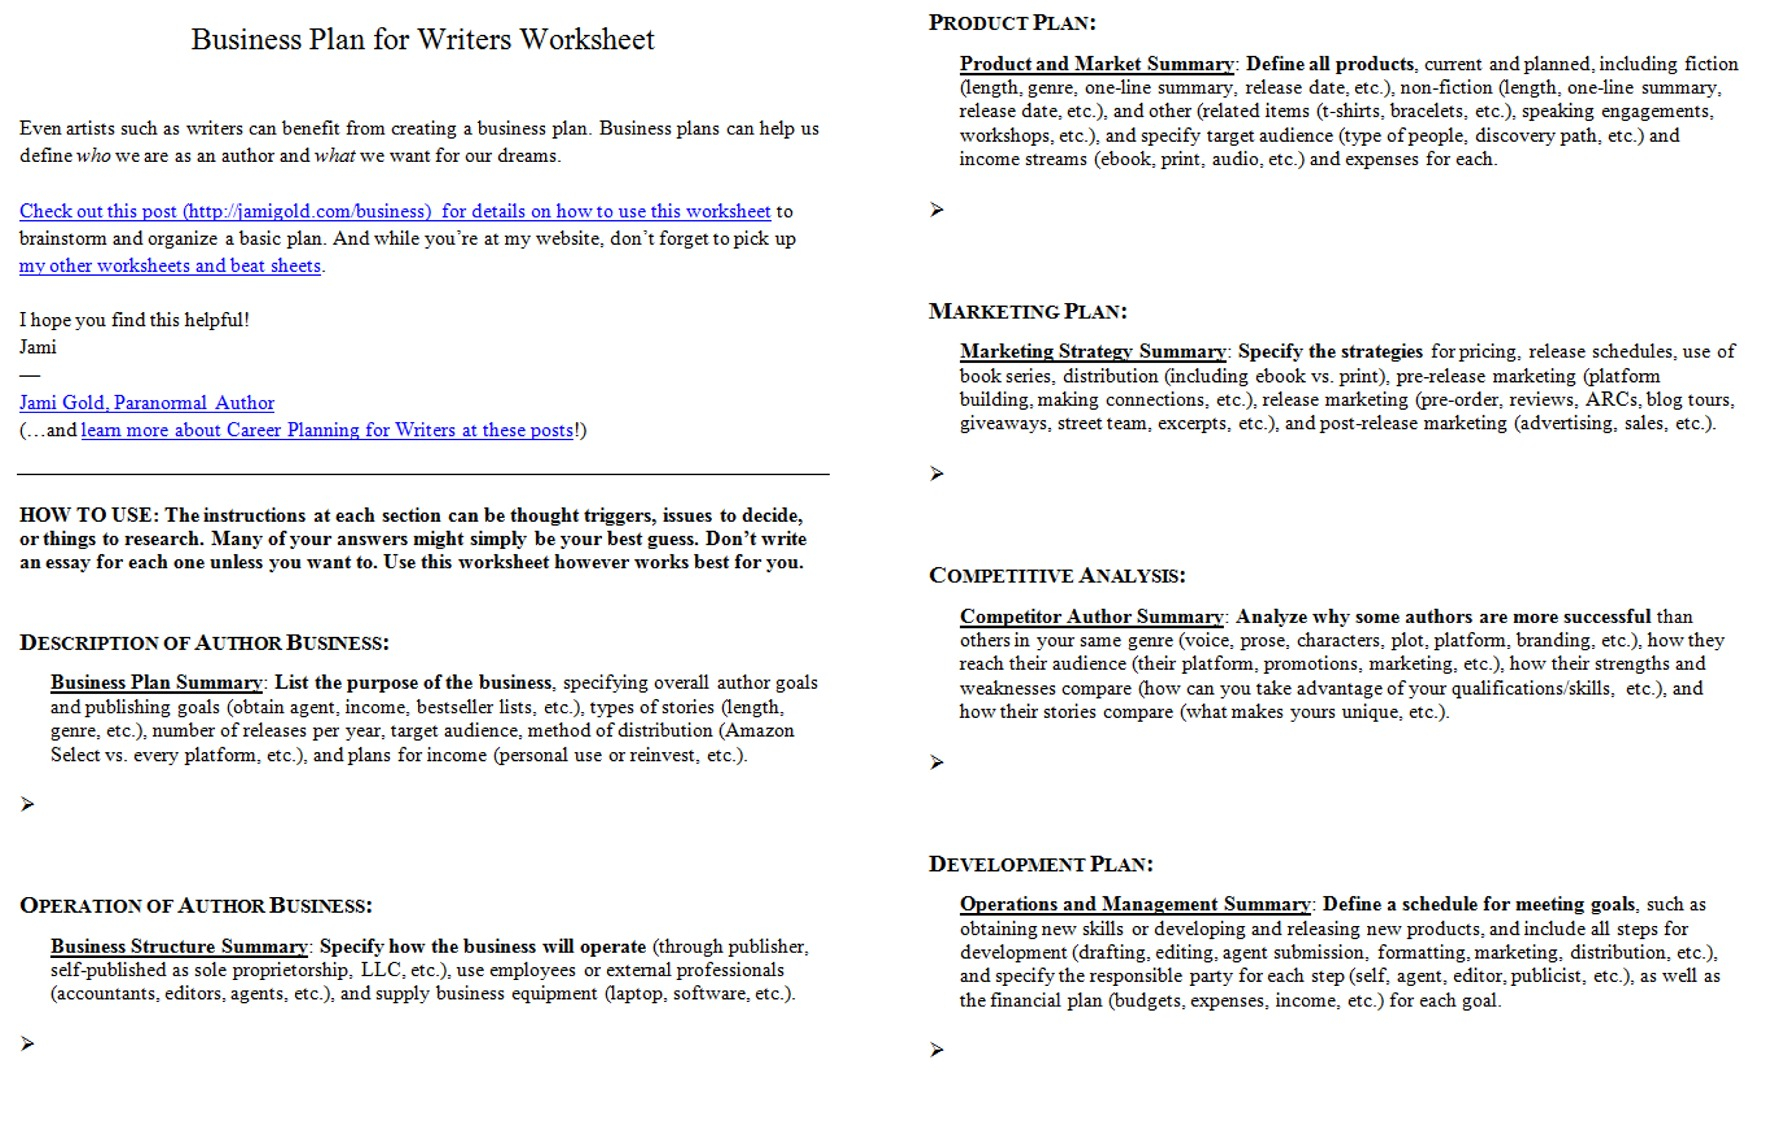 Proatmealus  Pretty Worksheets For Writers  Jami Gold Paranormal Author With Lovable Screen Shot Of Both Pages Of The Business Plan For Writers Worksheet With Agreeable Countable Nouns Worksheet Also Equivalent Fractions Worksheet Year  In Addition Letters And Sounds Phase  Worksheets And French Er Ir Re Verbs Worksheets As Well As Ap Words Worksheet Additionally Mathematics Worksheets For Grade  From Jamigoldcom With Proatmealus  Lovable Worksheets For Writers  Jami Gold Paranormal Author With Agreeable Screen Shot Of Both Pages Of The Business Plan For Writers Worksheet And Pretty Countable Nouns Worksheet Also Equivalent Fractions Worksheet Year  In Addition Letters And Sounds Phase  Worksheets From Jamigoldcom